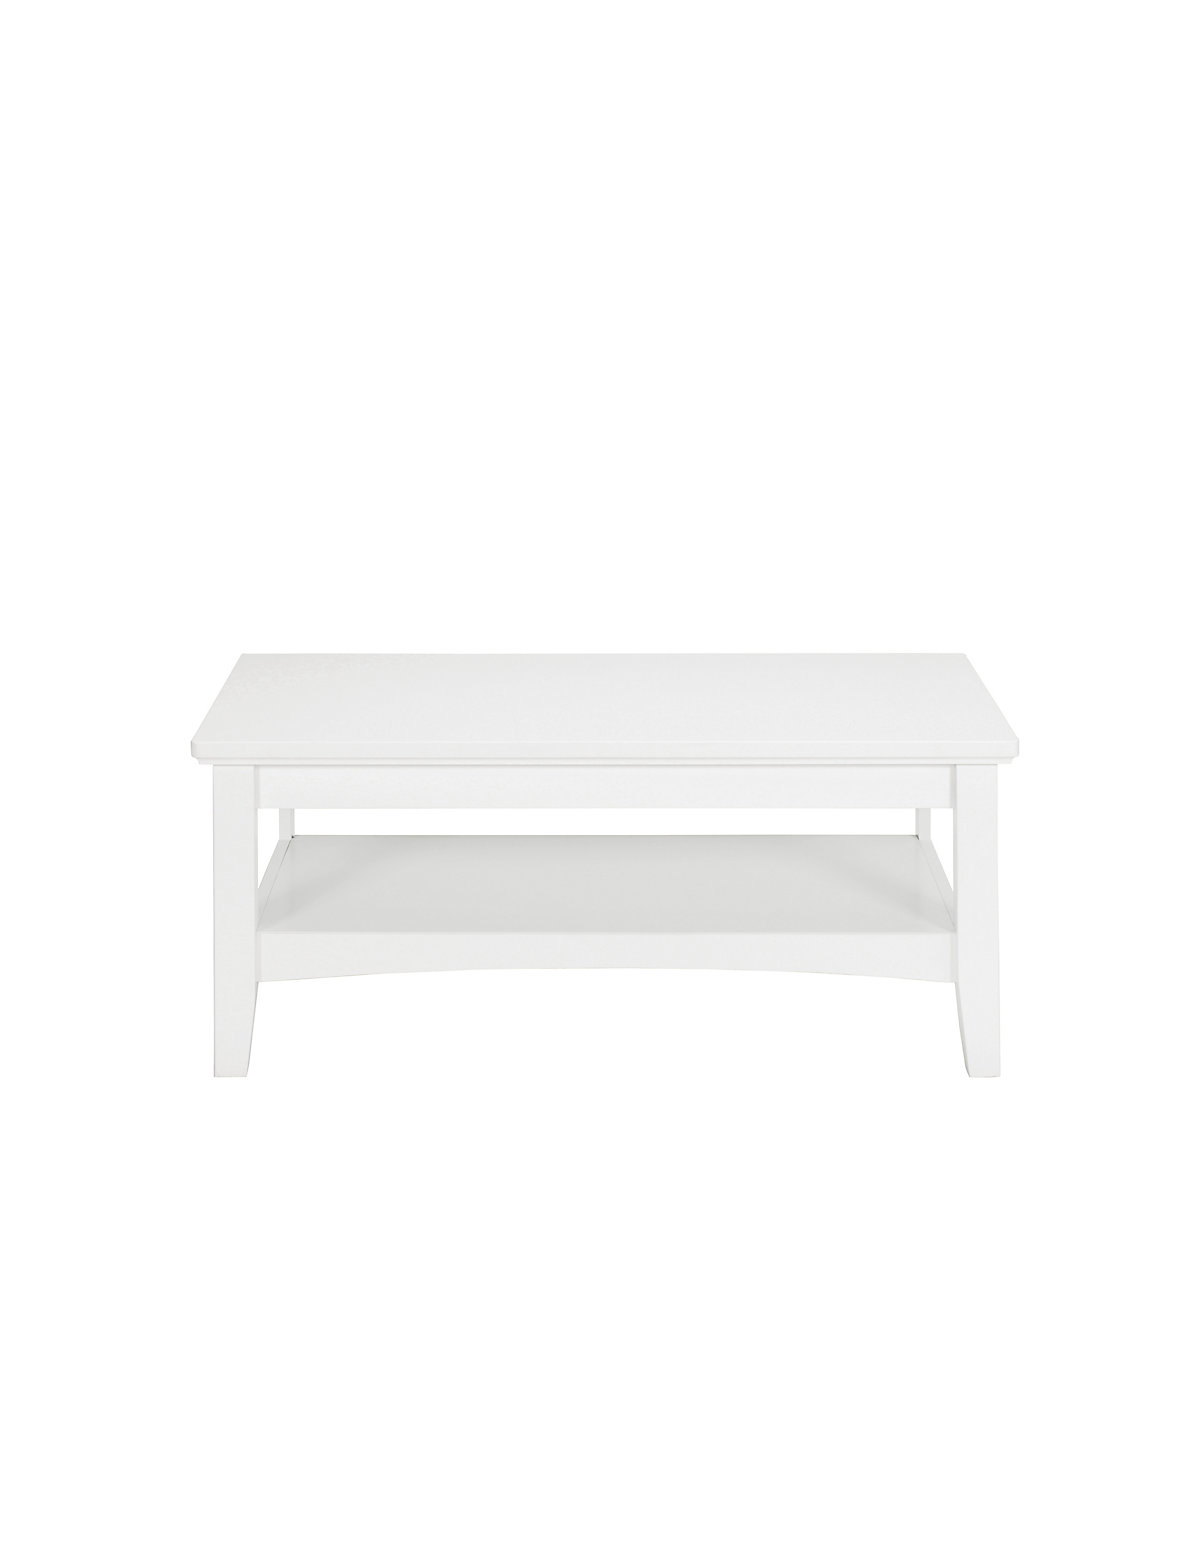 Beckworth Coffee Table